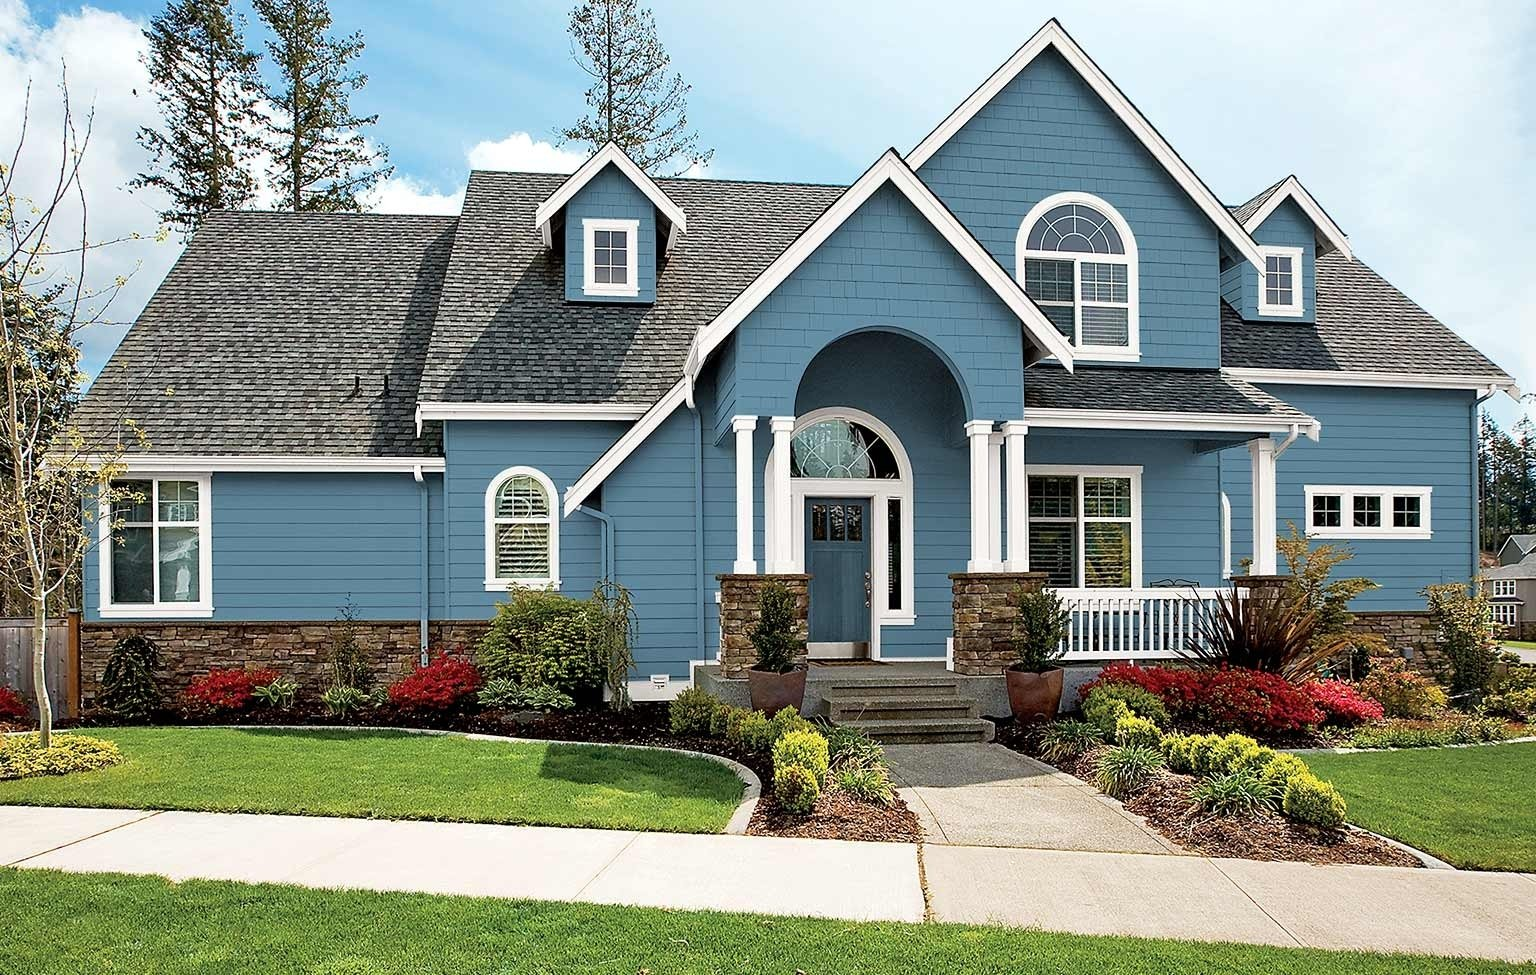 10 Attractive Exterior House Paint Ideas Pictures house paint colors for your exterior 2020